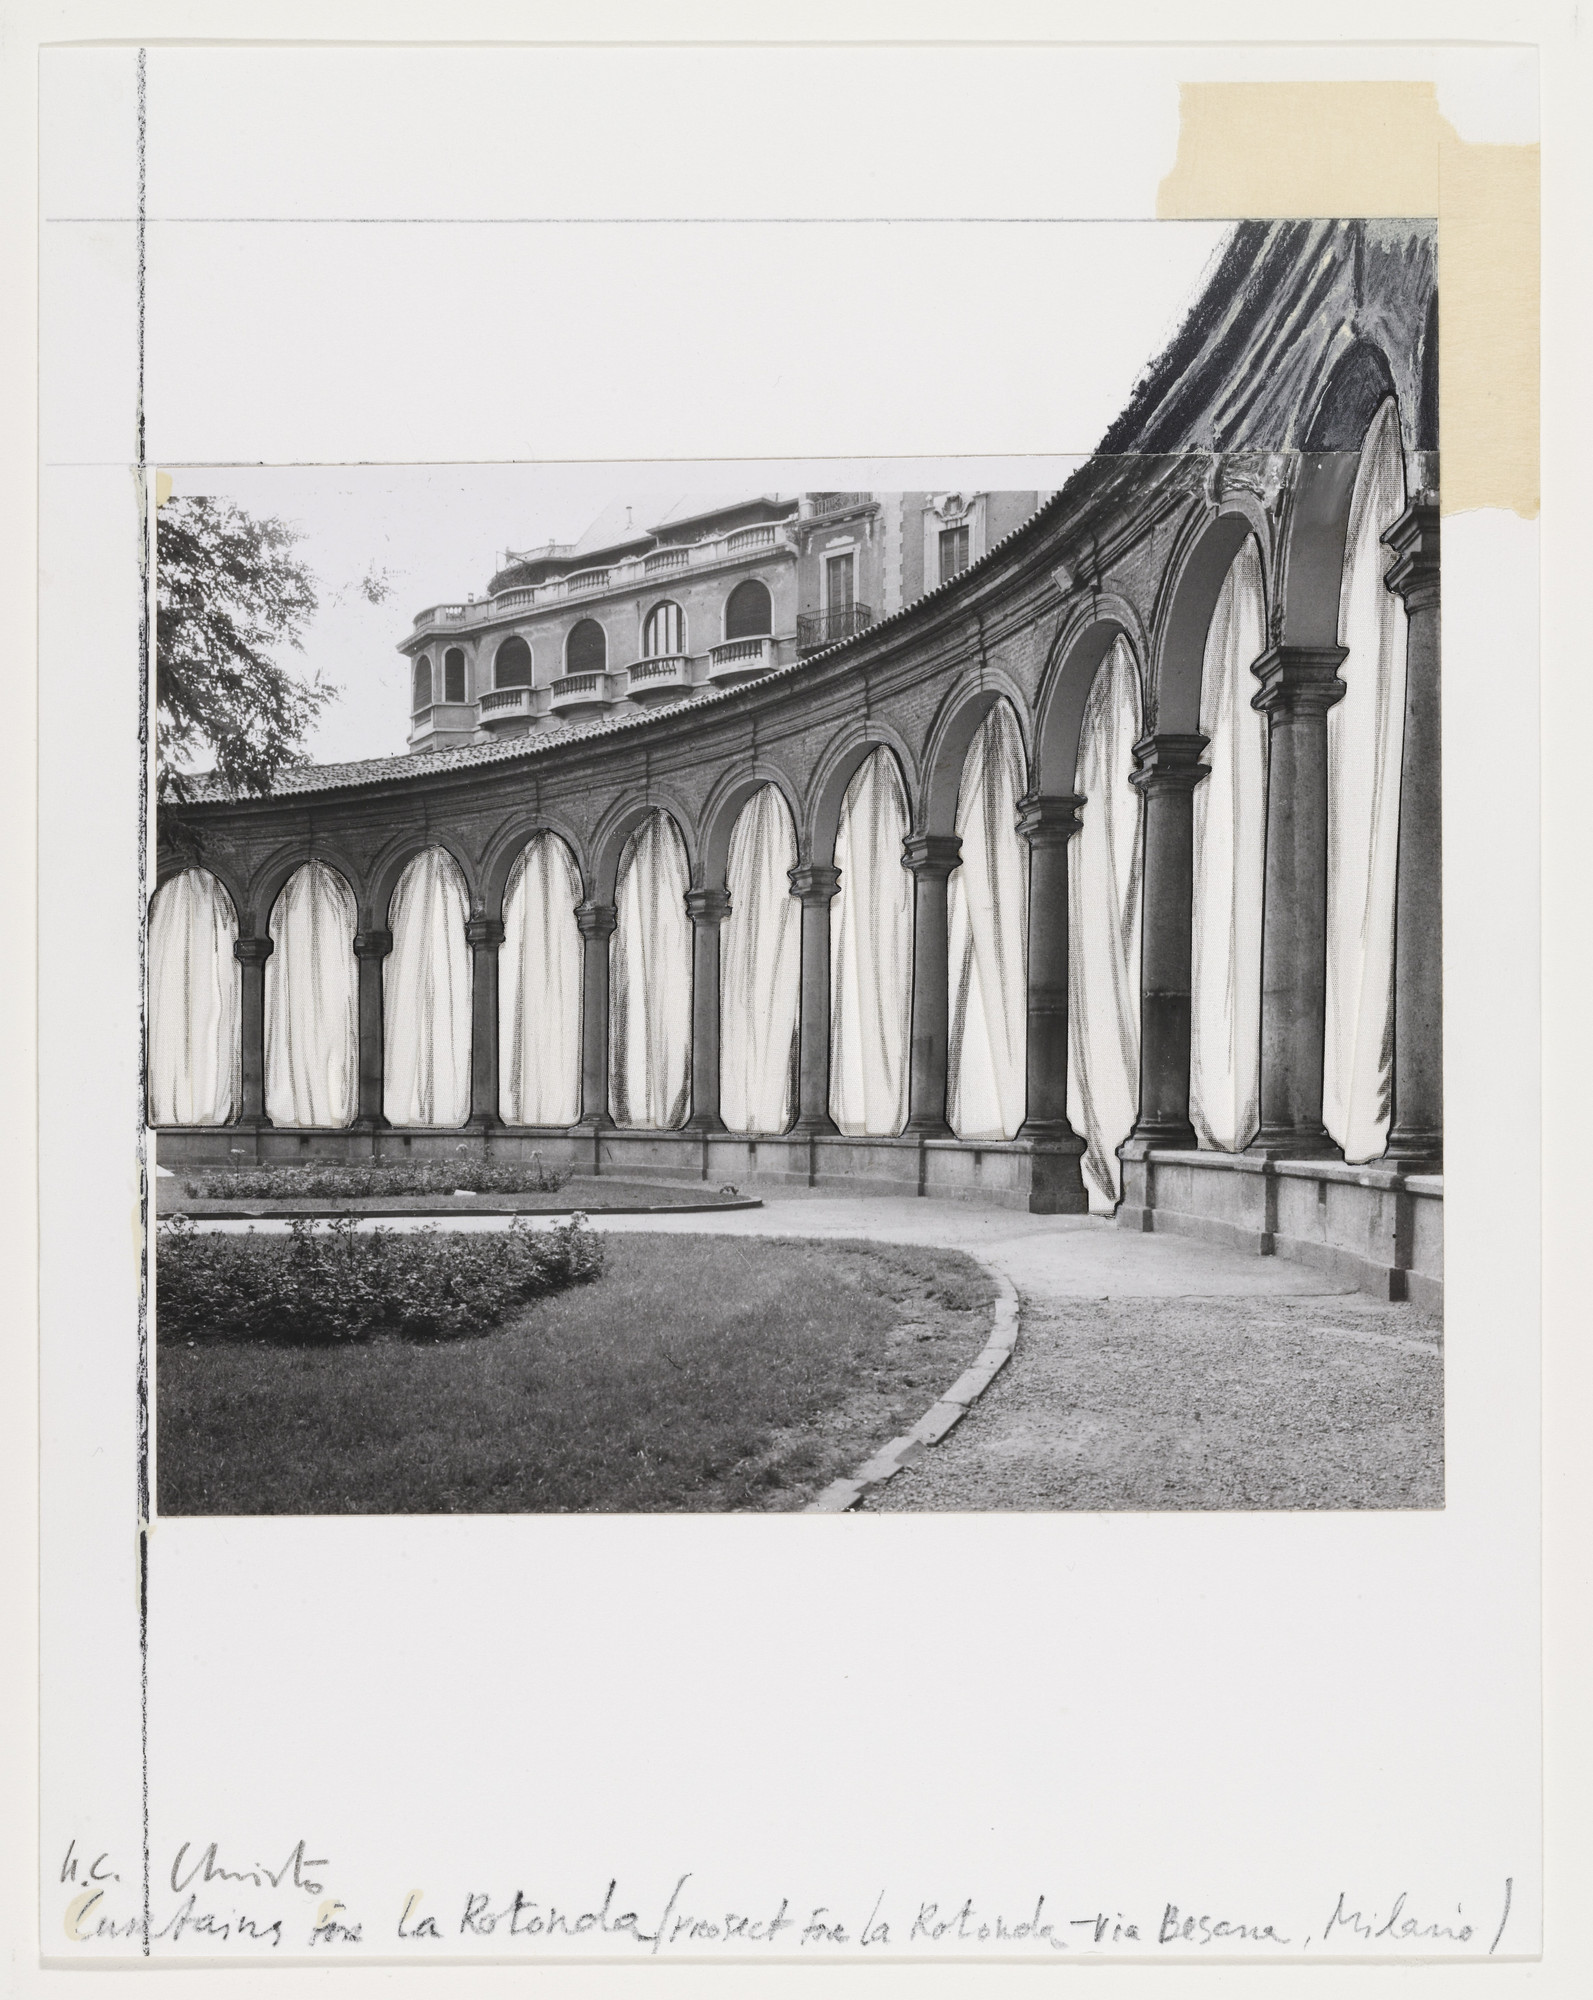 Christo. Curtains for La Rotunda, Project for Milan from the portfolio Five Urban Projects. (1985)